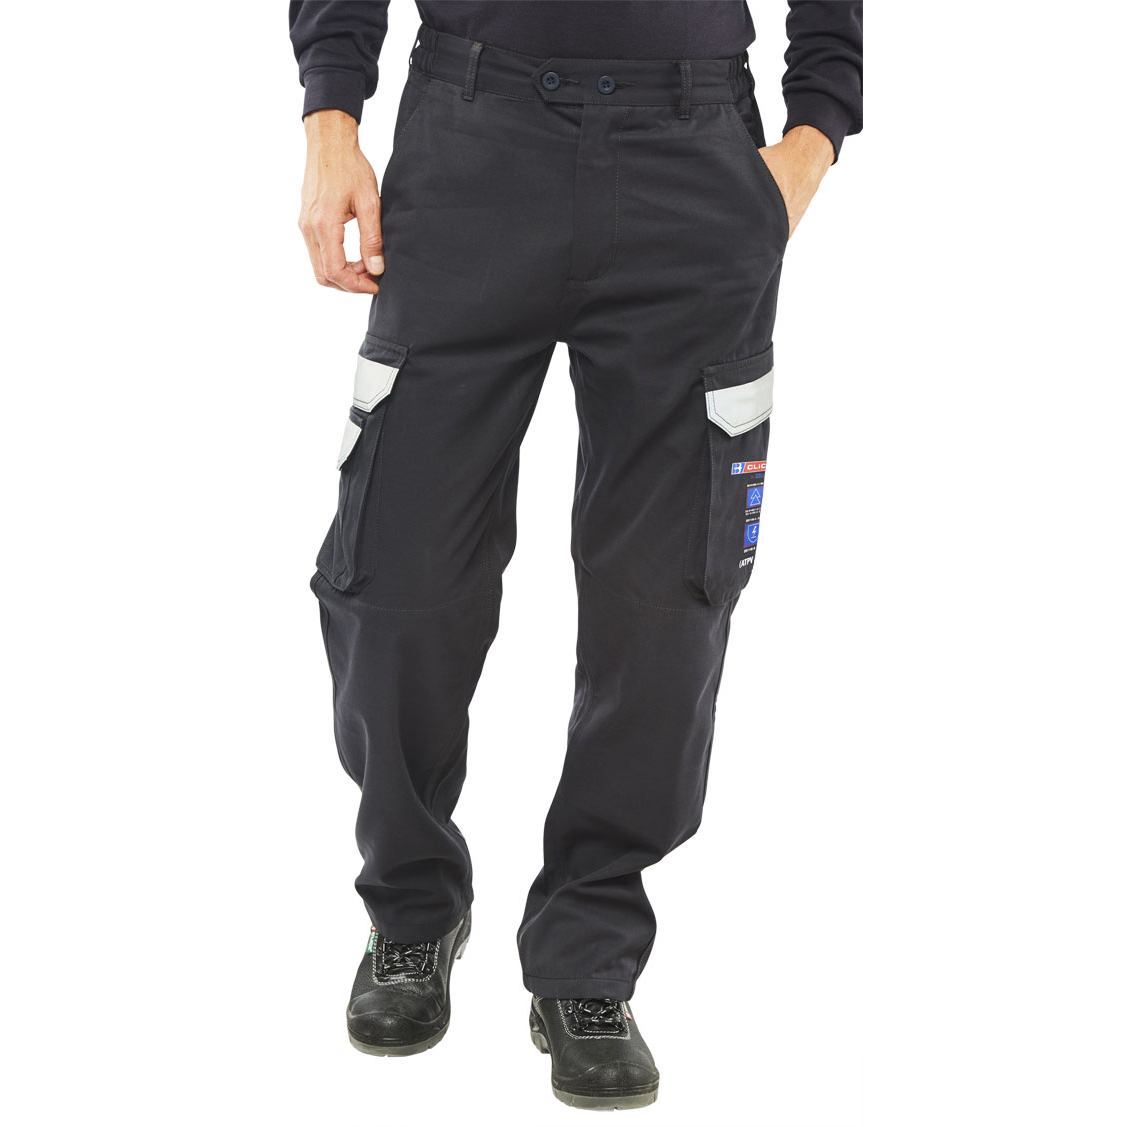 Fire Retardant / Flame Resistant Click Arc Flash Trousers Fire Retardant Navy Blue 30-Tall Ref CARC4N30T *Up to 3 Day Leadtime*